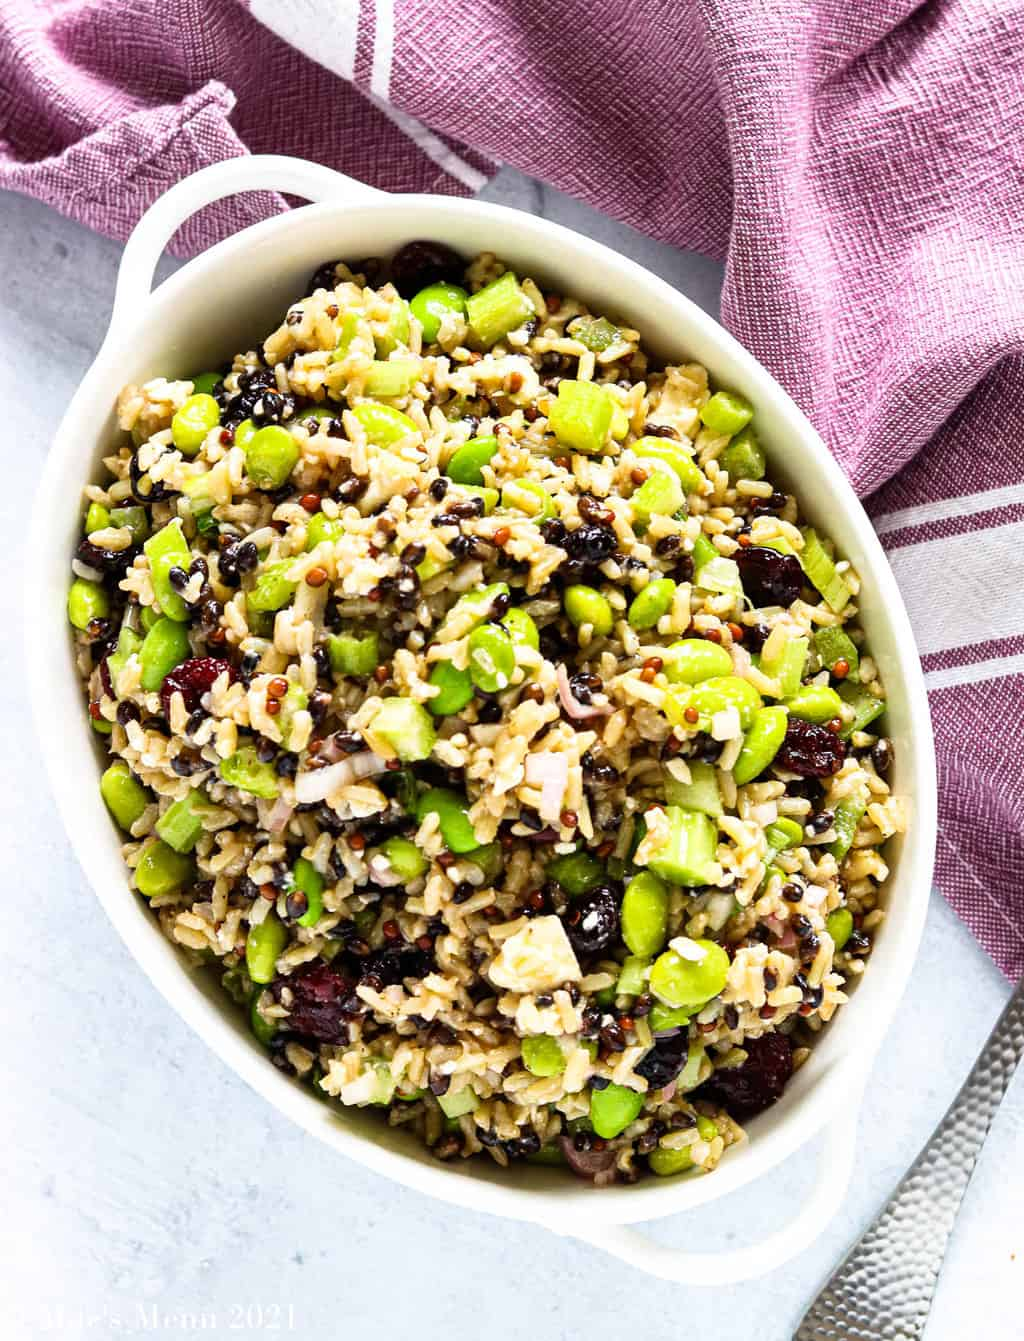 An overhead shot of a small serving dish of cranberry & edamame brown rice salad